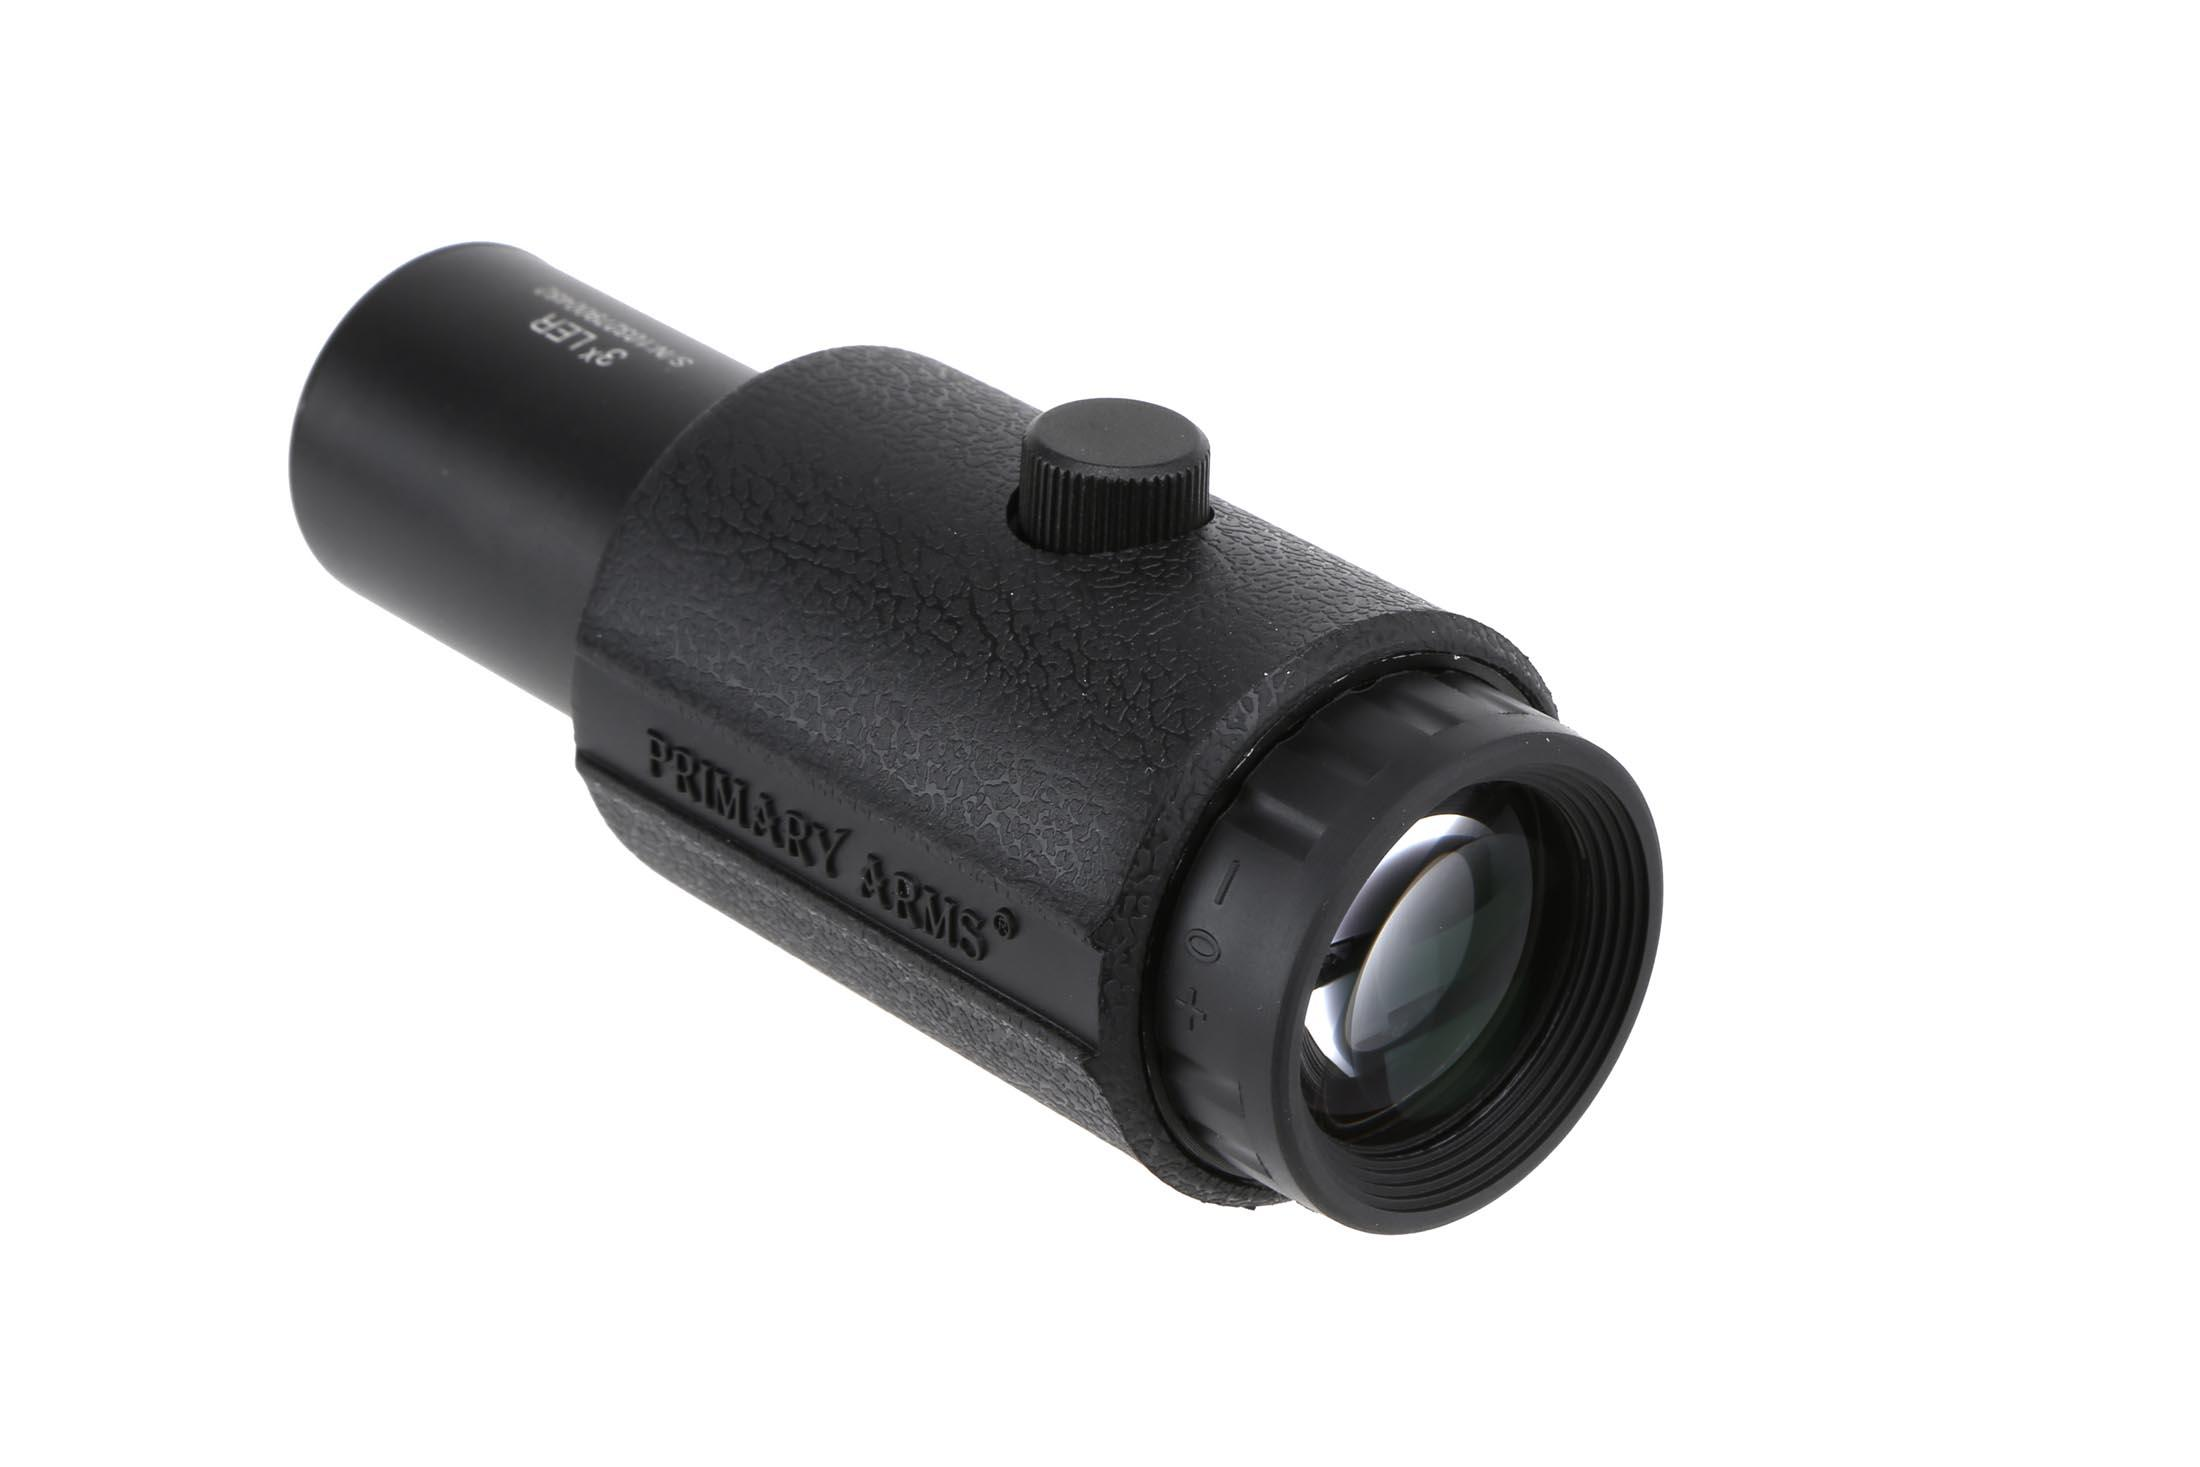 The Primary Arms 3X LER red dot magnifier features a rubber armor sleeve